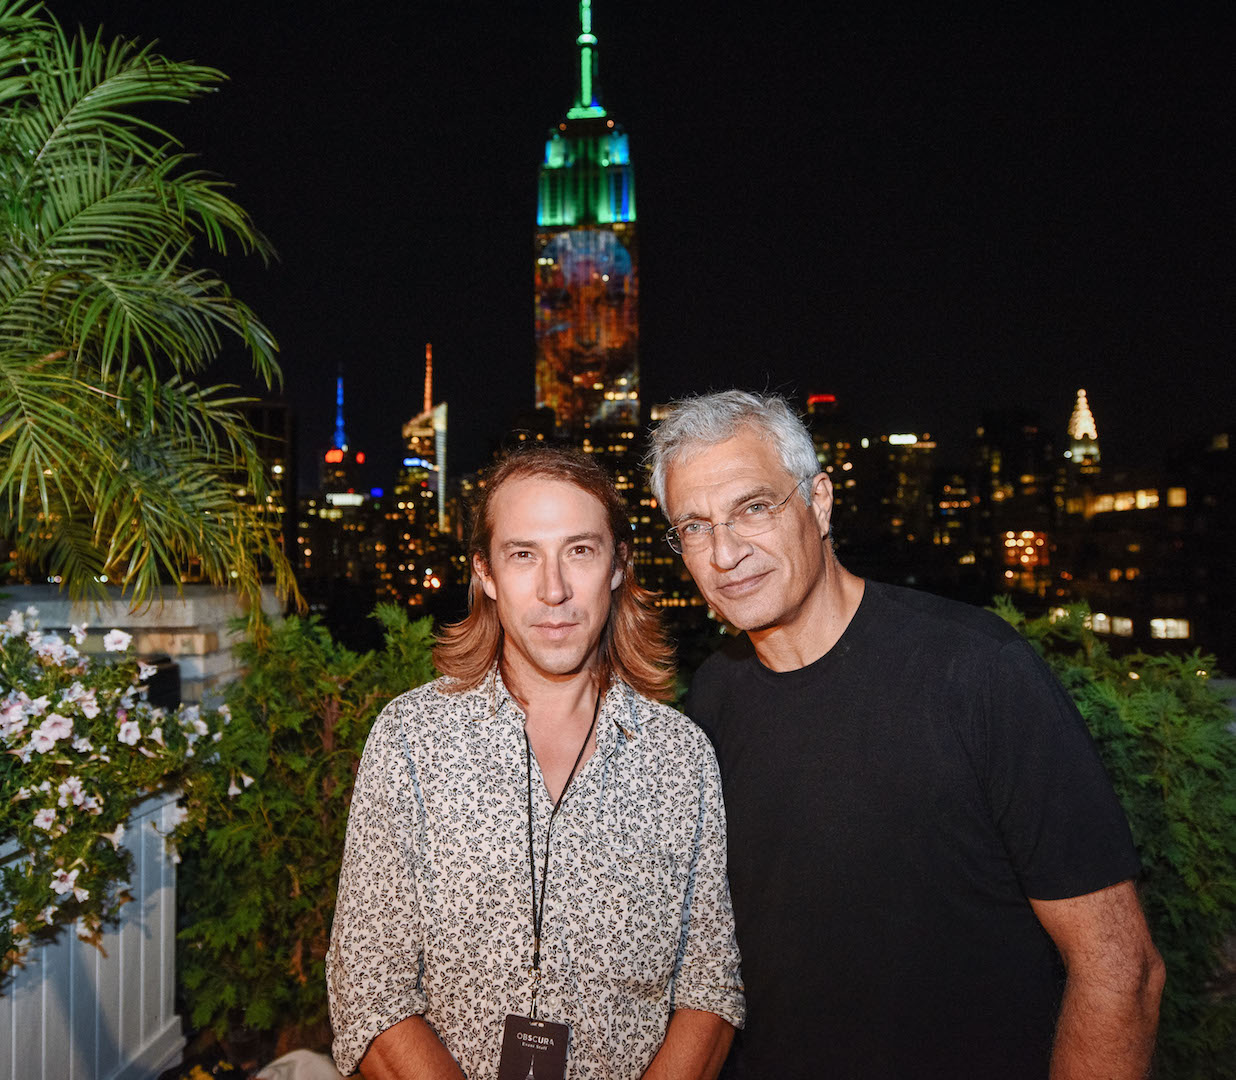 NEW YORK, NY - AUGUST 01:  (L-R) Travis Threlkel, Chief Creative Officer of Obscura Digital, and Louie Psihoyos, founder of Oceanic Preservation Society attend Projecting Change: The Empire State Building at The Empire State Building on August 1, 2015 in New York City.  (Photo by Grant Lamos IV/Getty Images for The Oceanic Preservation Society)